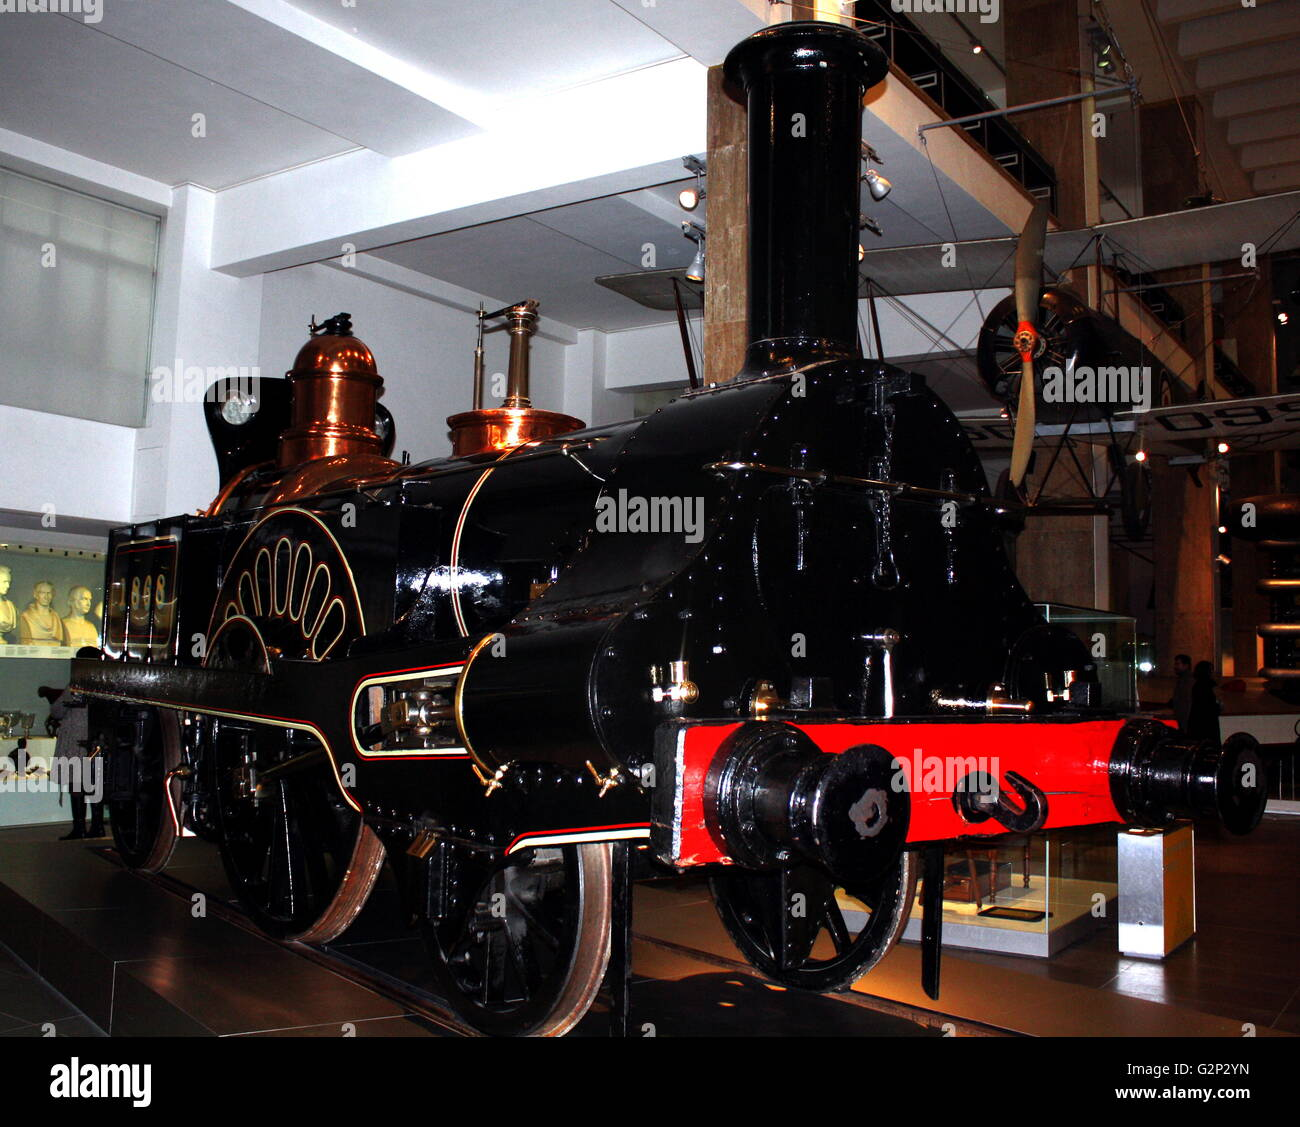 Antique Grand Junction Railway locomotive. - Stock Image